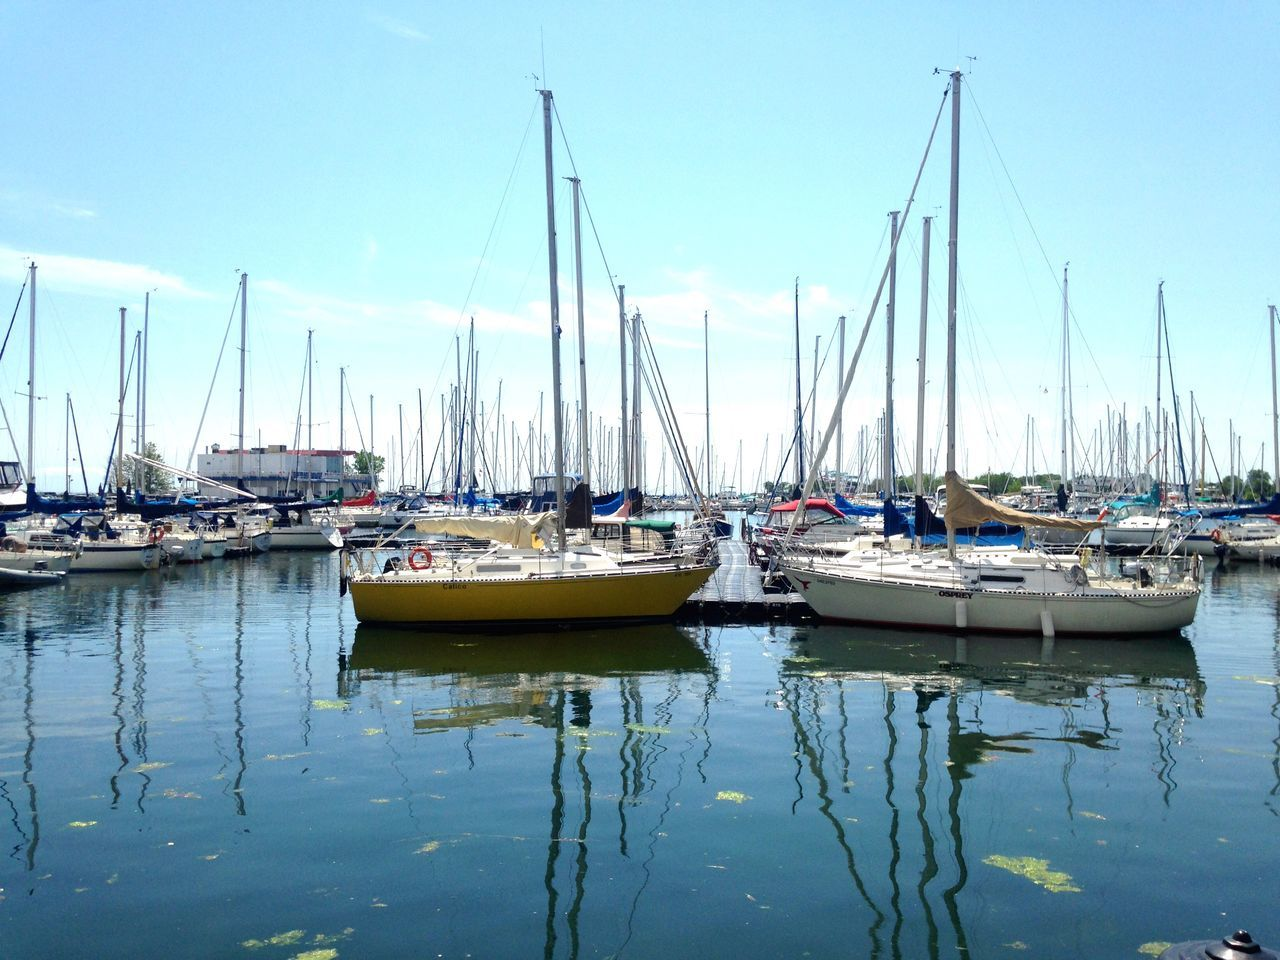 Strolling along the Toronto Harbourfront Taking Photos of Yachts On A Sunny Afternoon Enjoying The Sun and Fresh Air